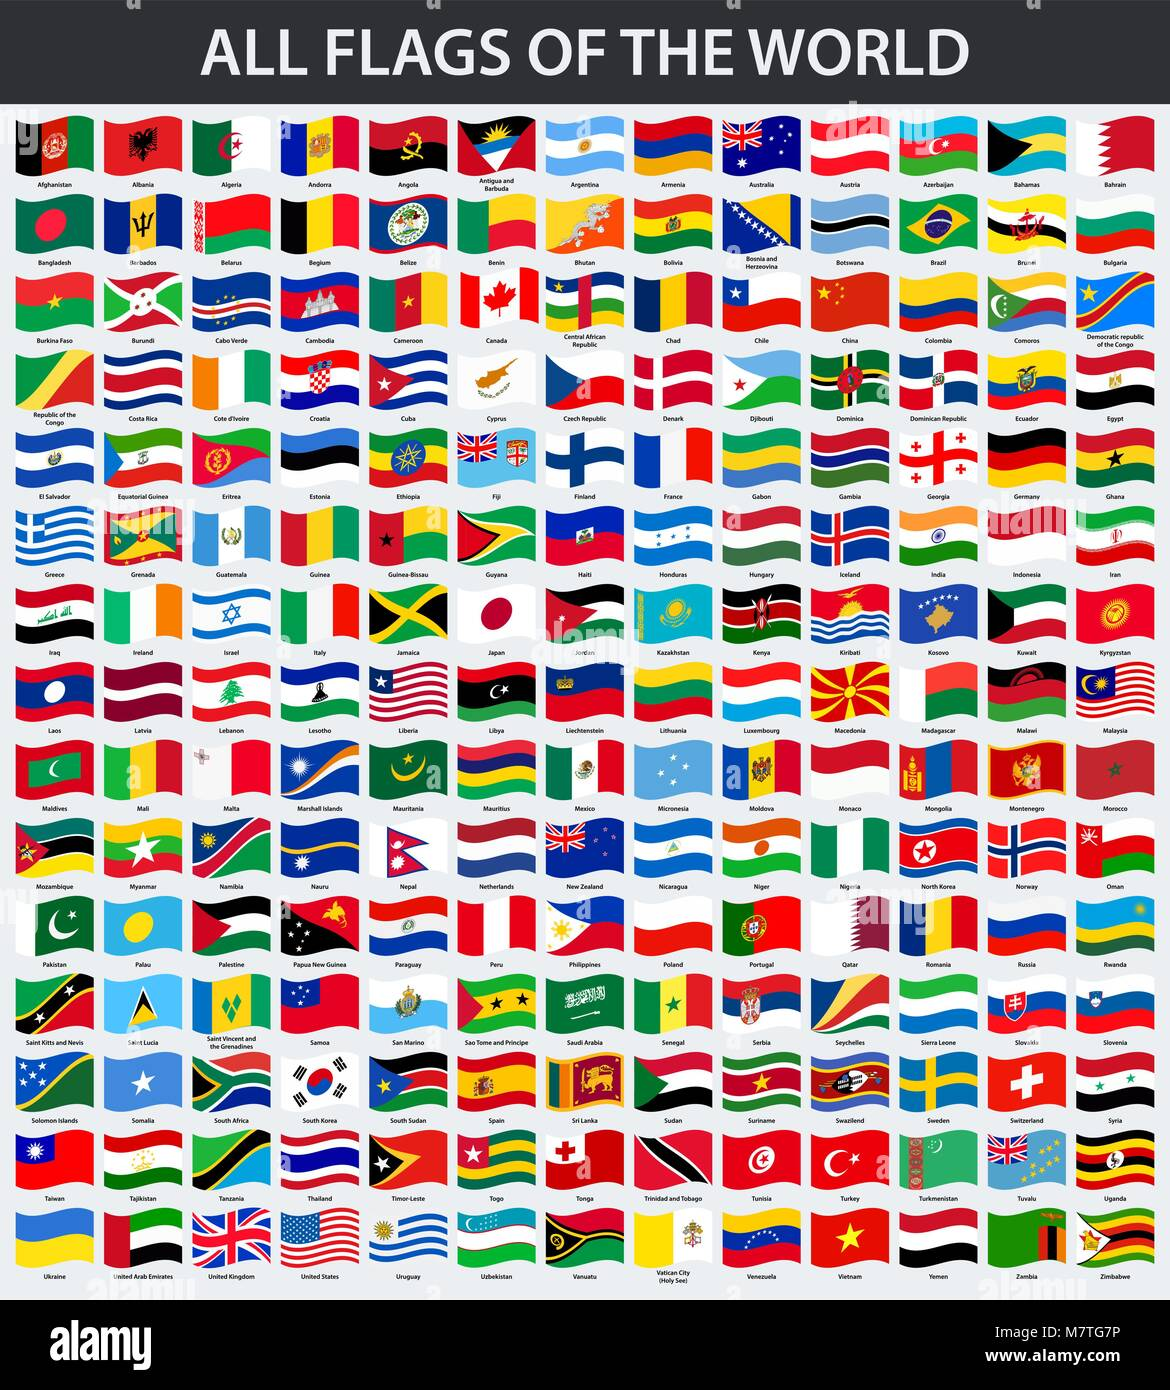 Flags Of The World Stock Photos & Flags Of The World Stock